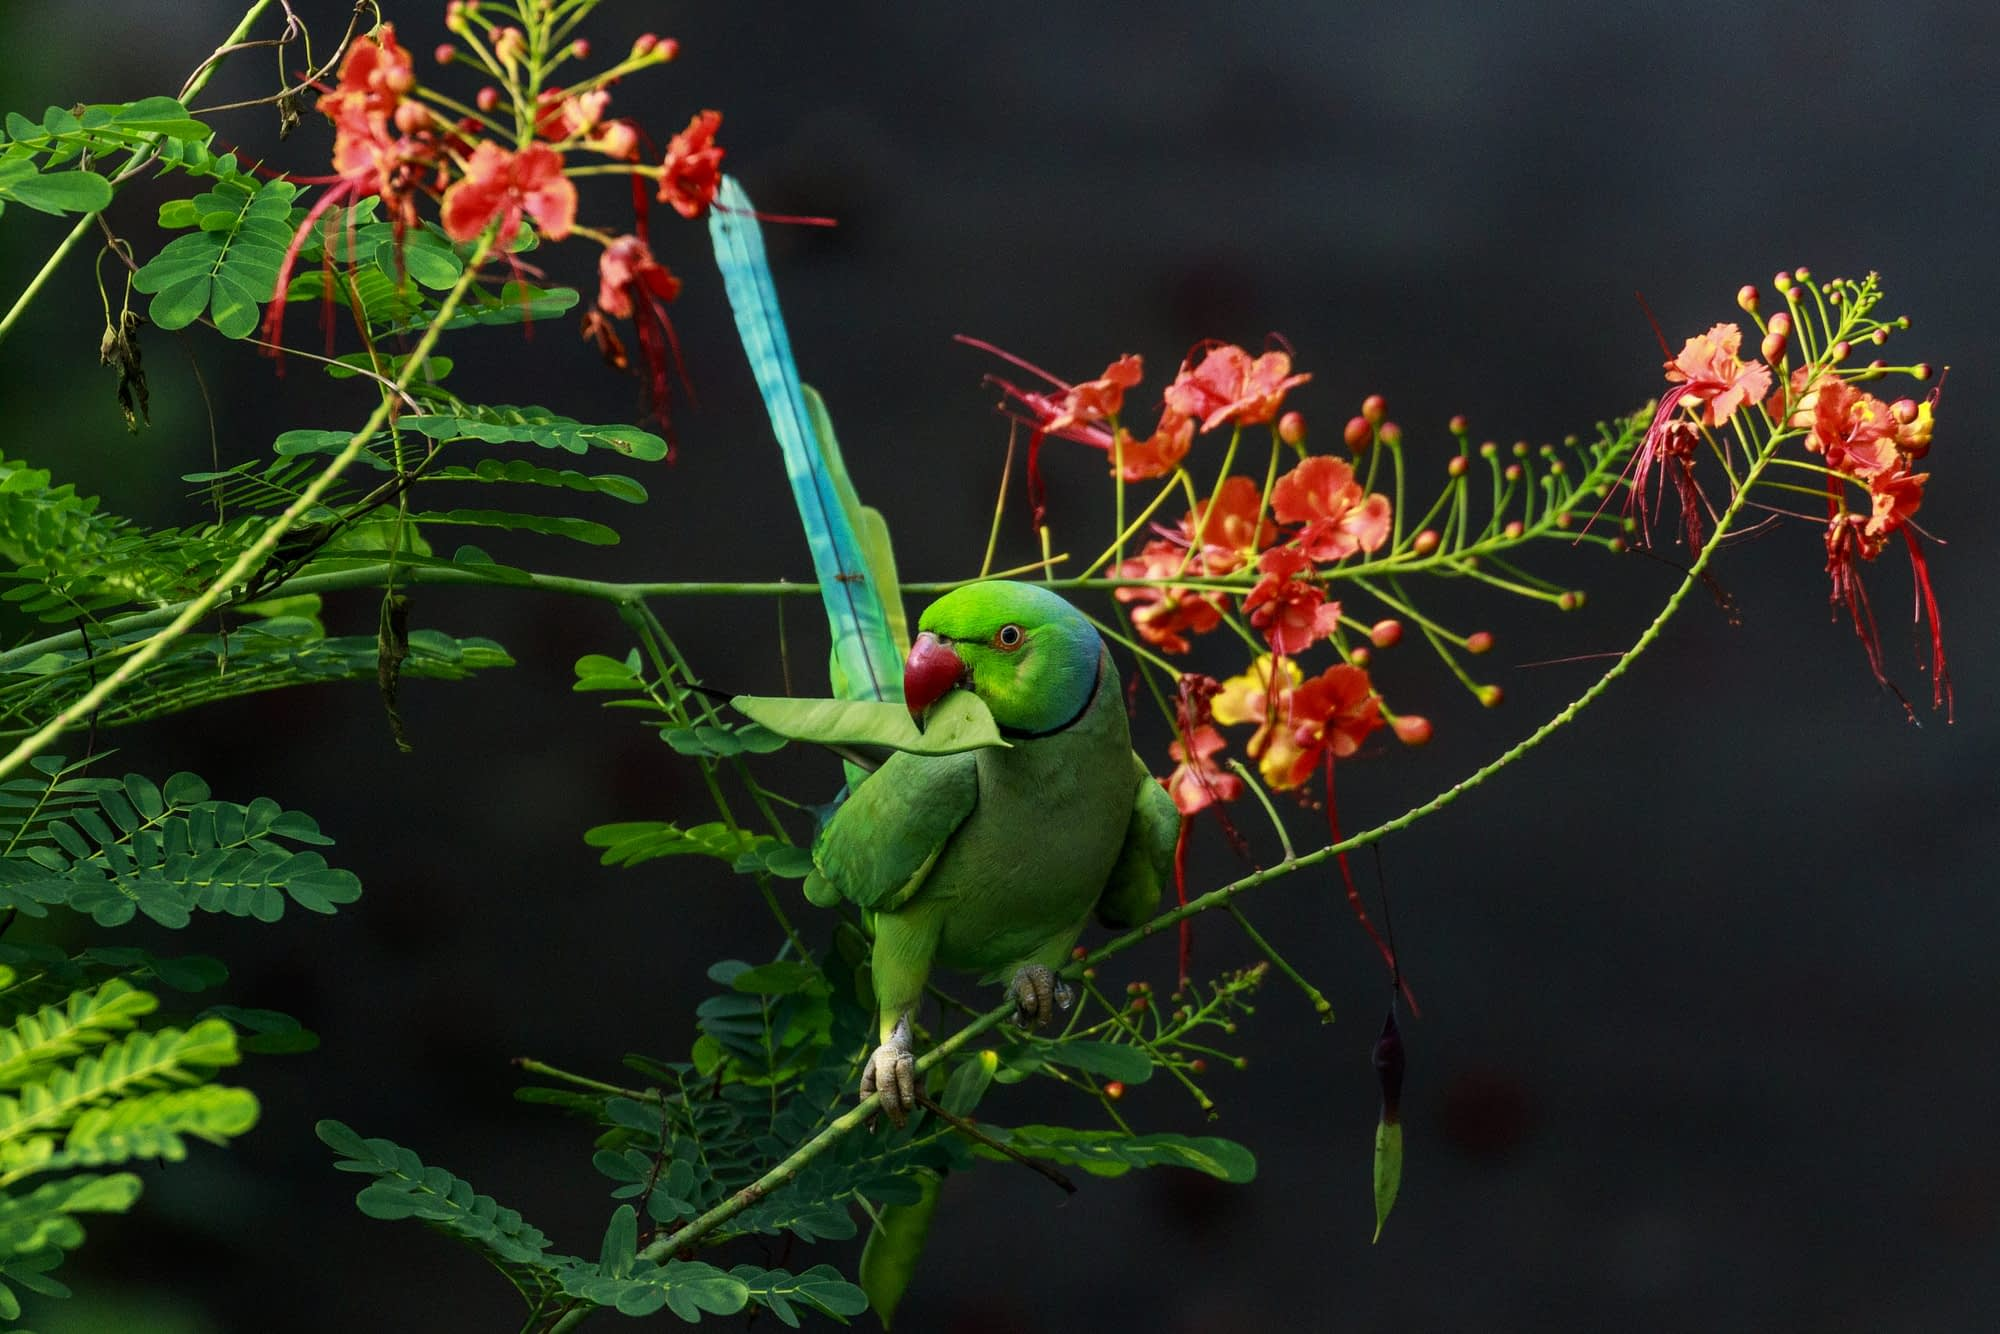 Photograph of a Rose-ringed Parakeet